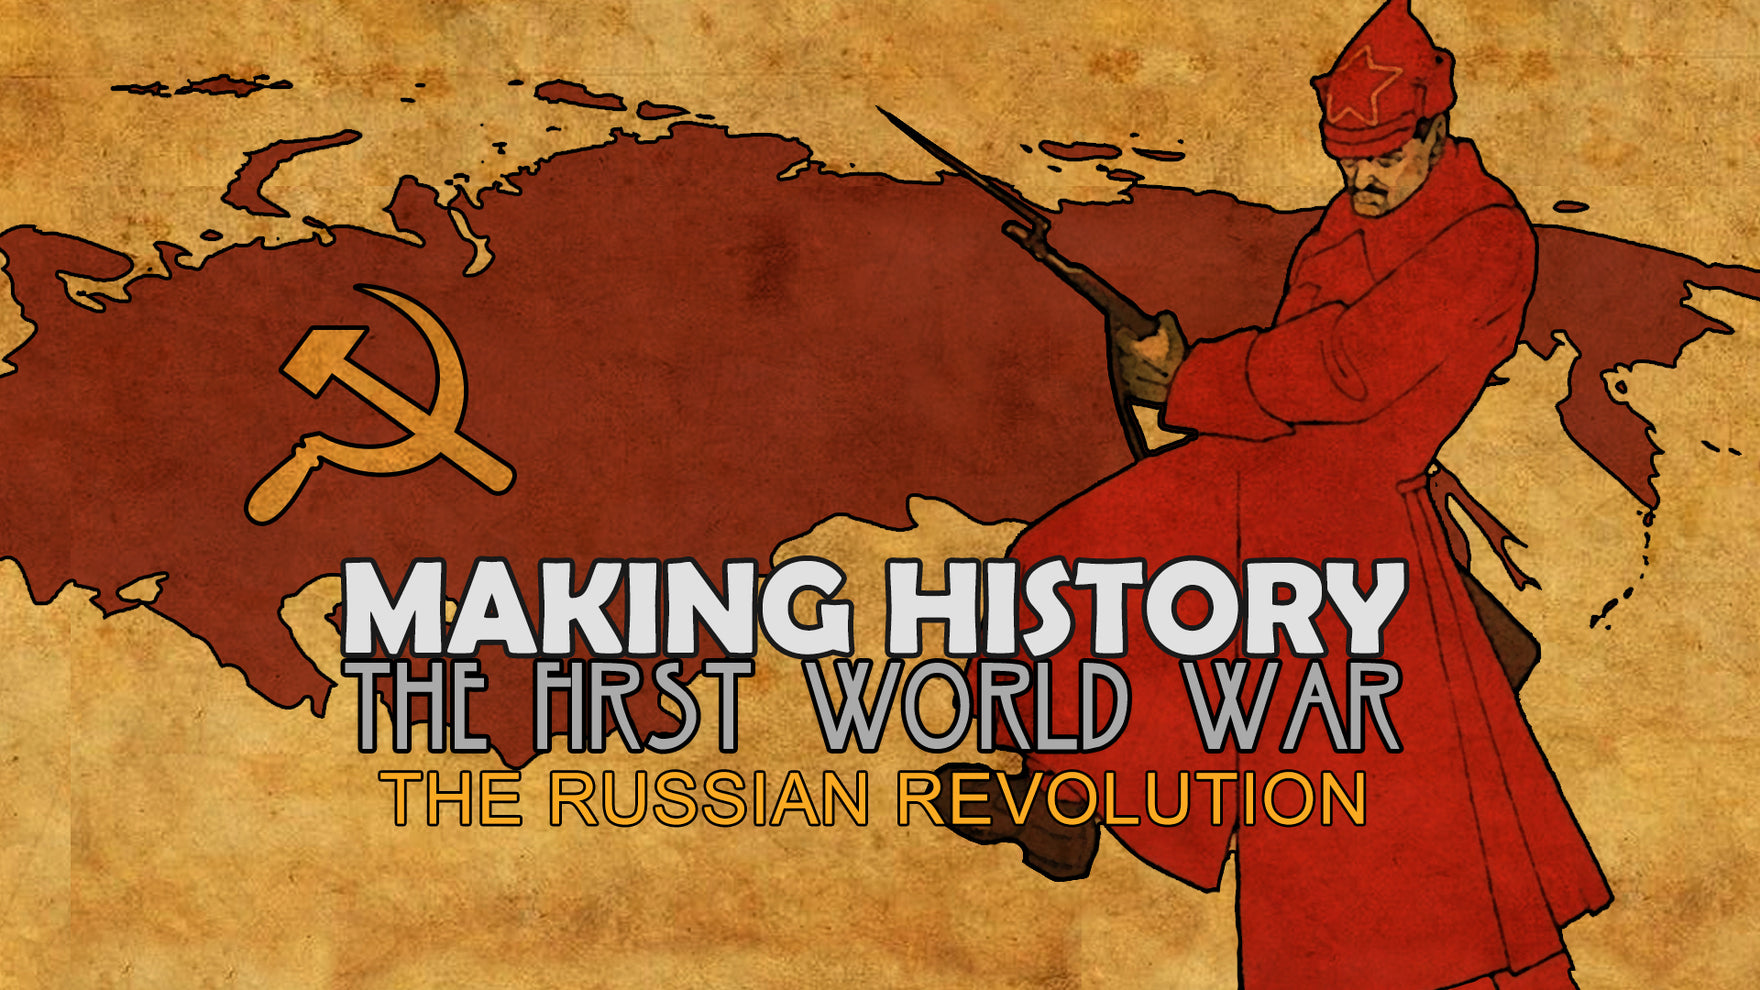 Making History: The First World War Early - The Russian Revolution Update